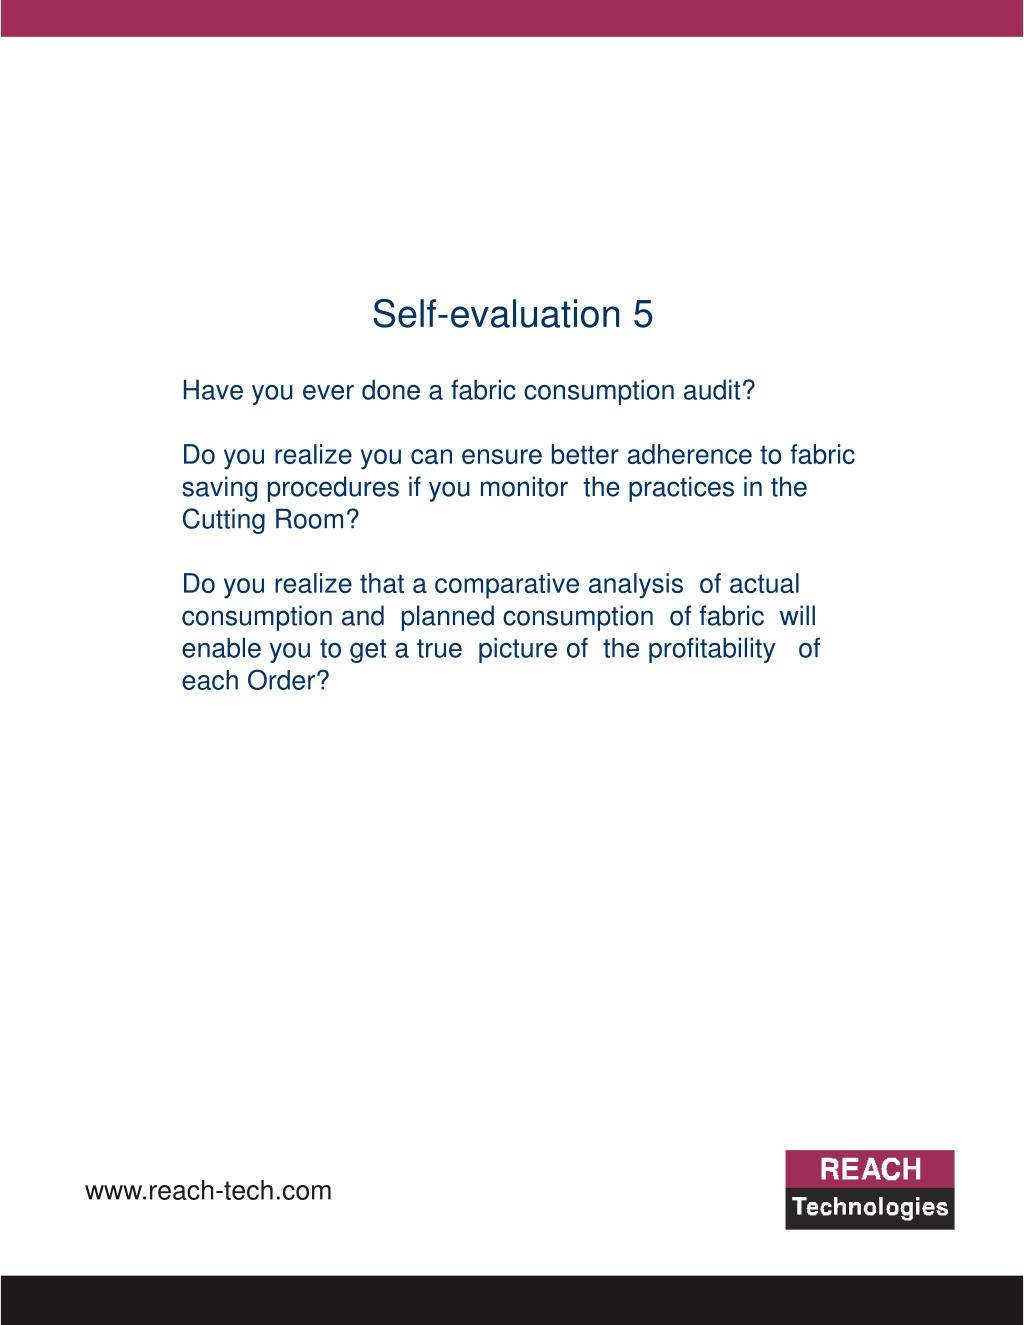 Self-evaluation 5